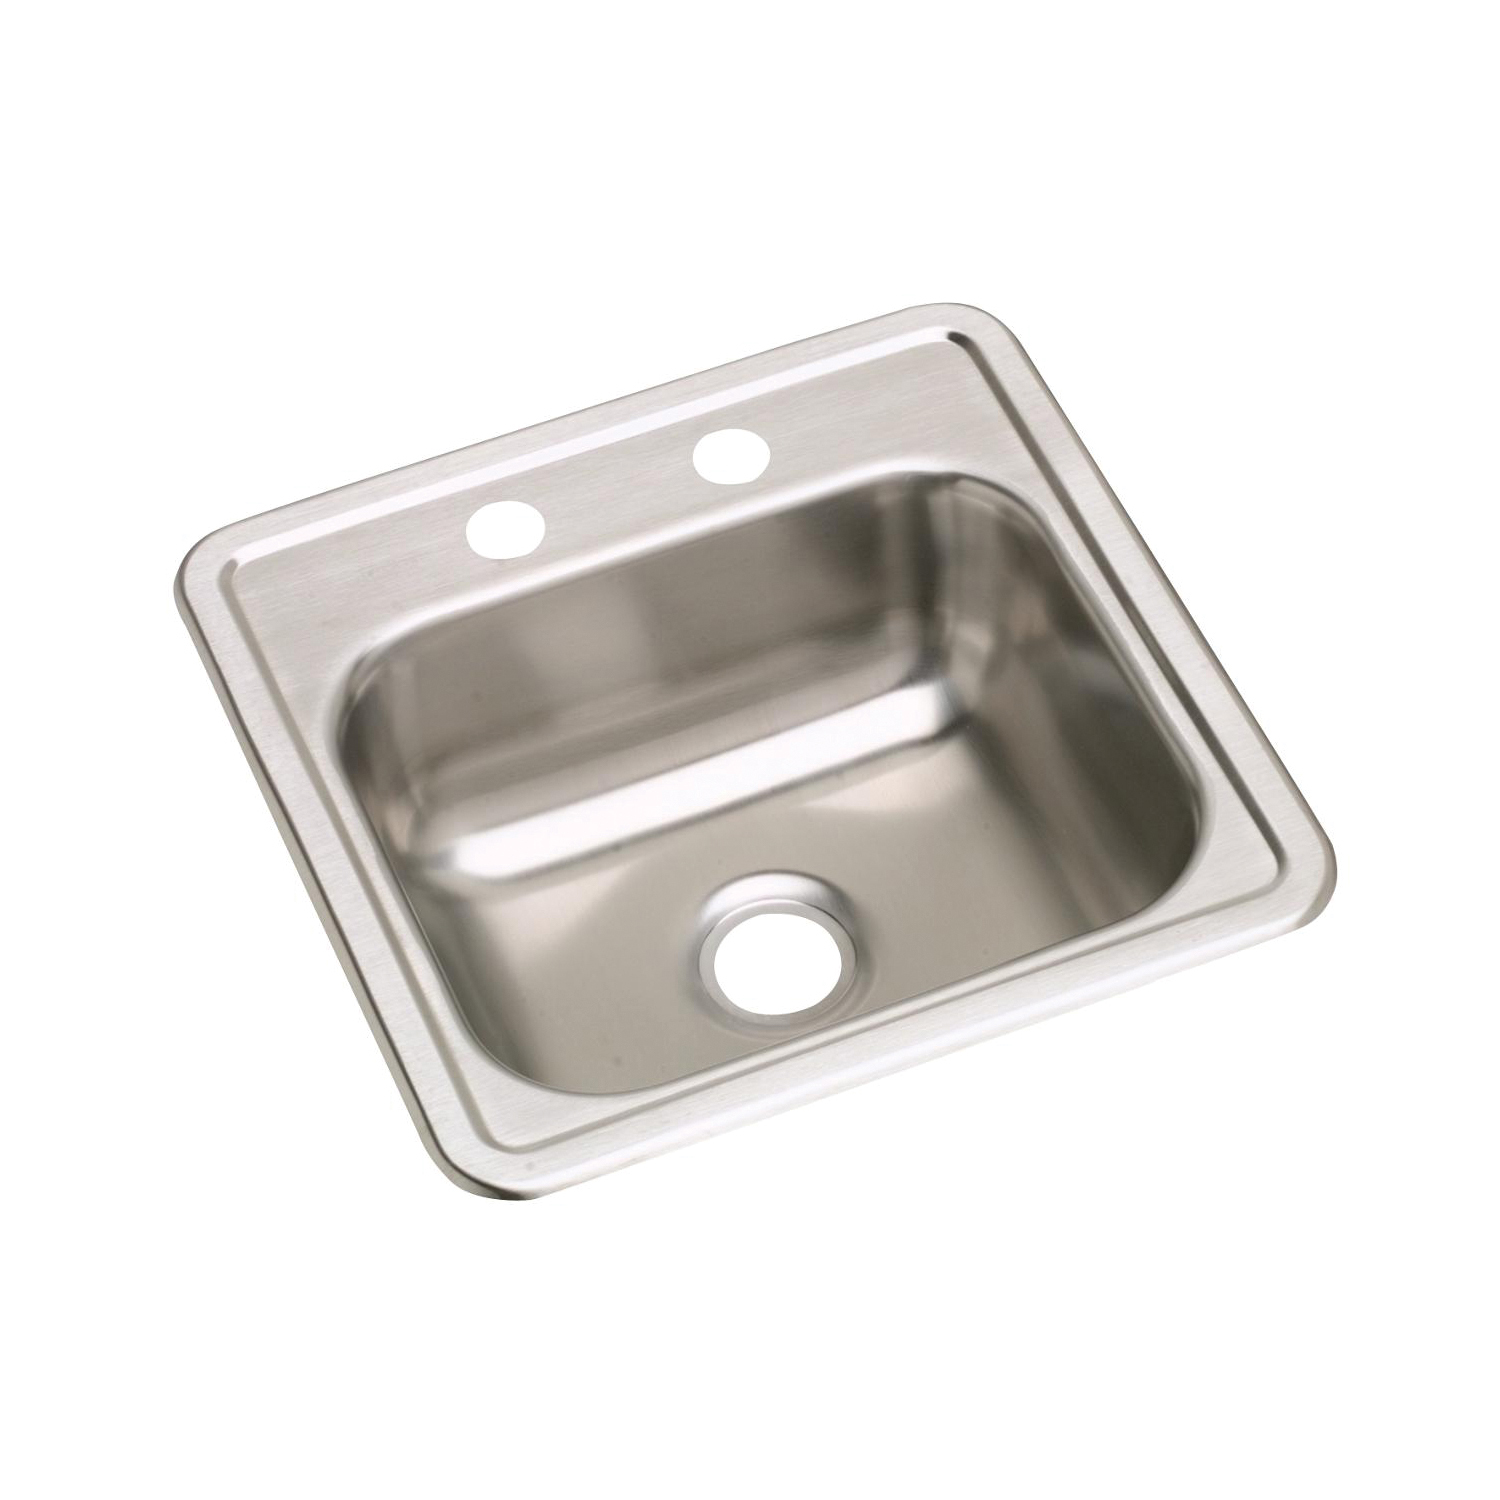 Elkay® K115152 Dayton® Bar Sink, Square, 2 Faucet Holes, 15 in W x 15 in D x 5-3/16 in H, Top Mount, Stainless Steel, Satin, Domestic